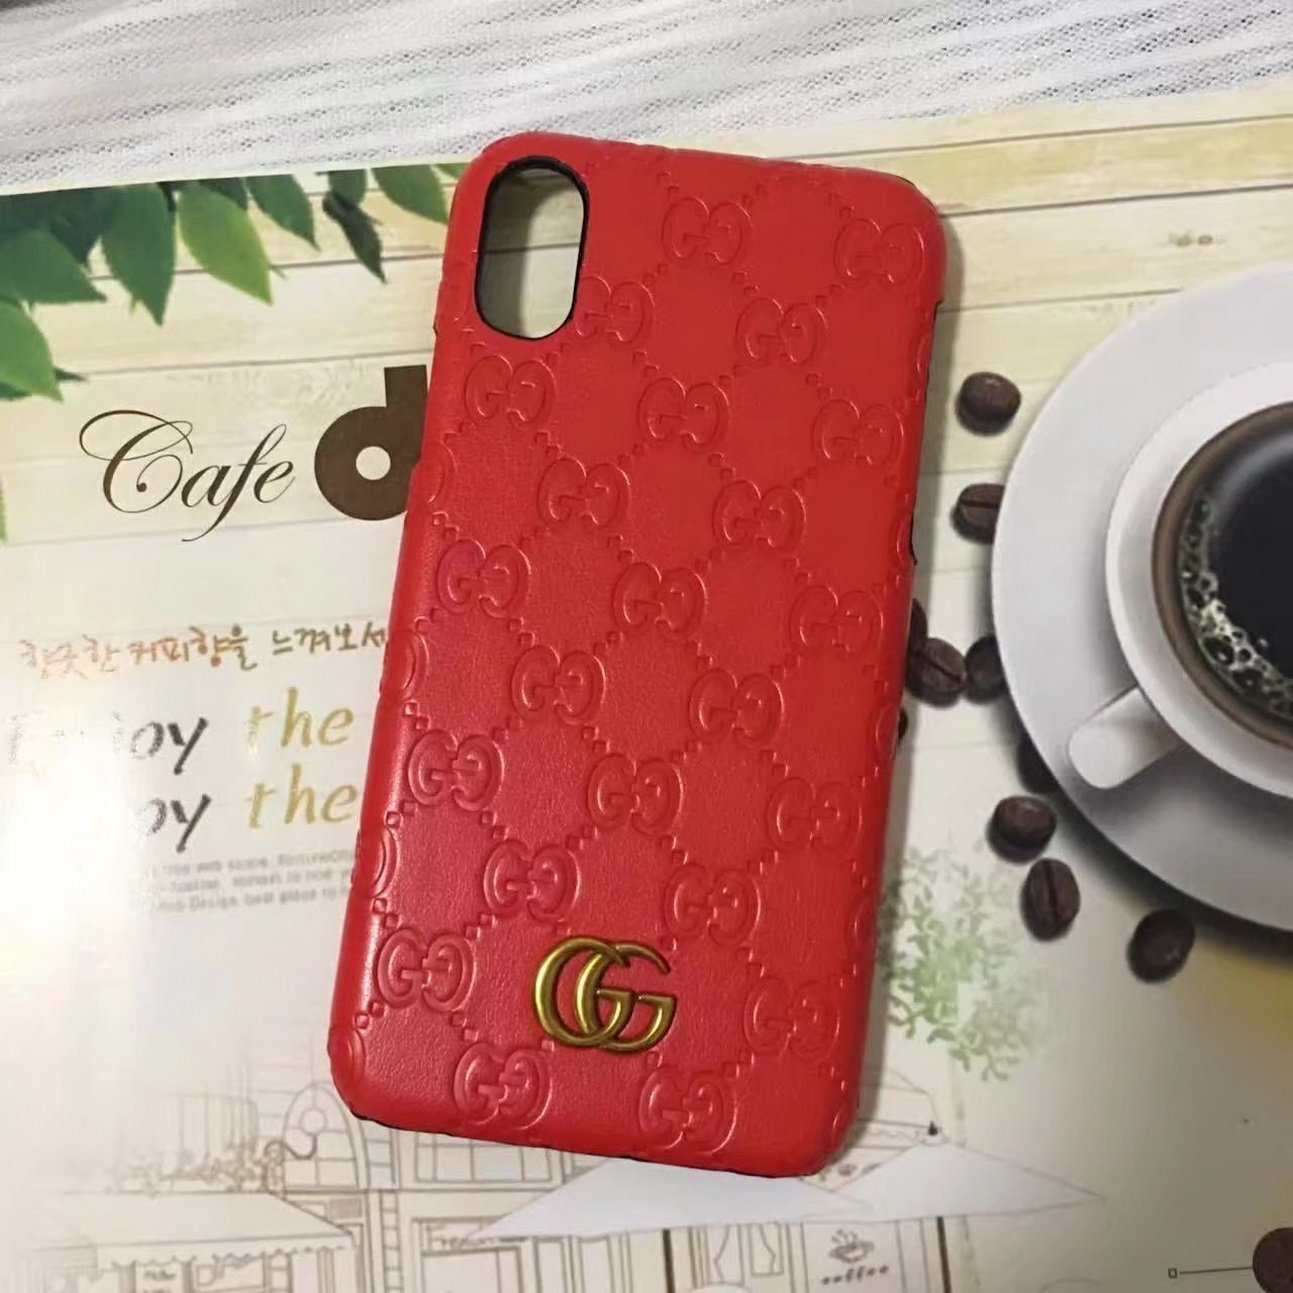 For iPhone x case,iPhone 10 case,Fashion Graphic Style Premium Luxury PU Leather Case Cover for Apple iPhone x iphone ten(2017) only(Red GG Monogram)